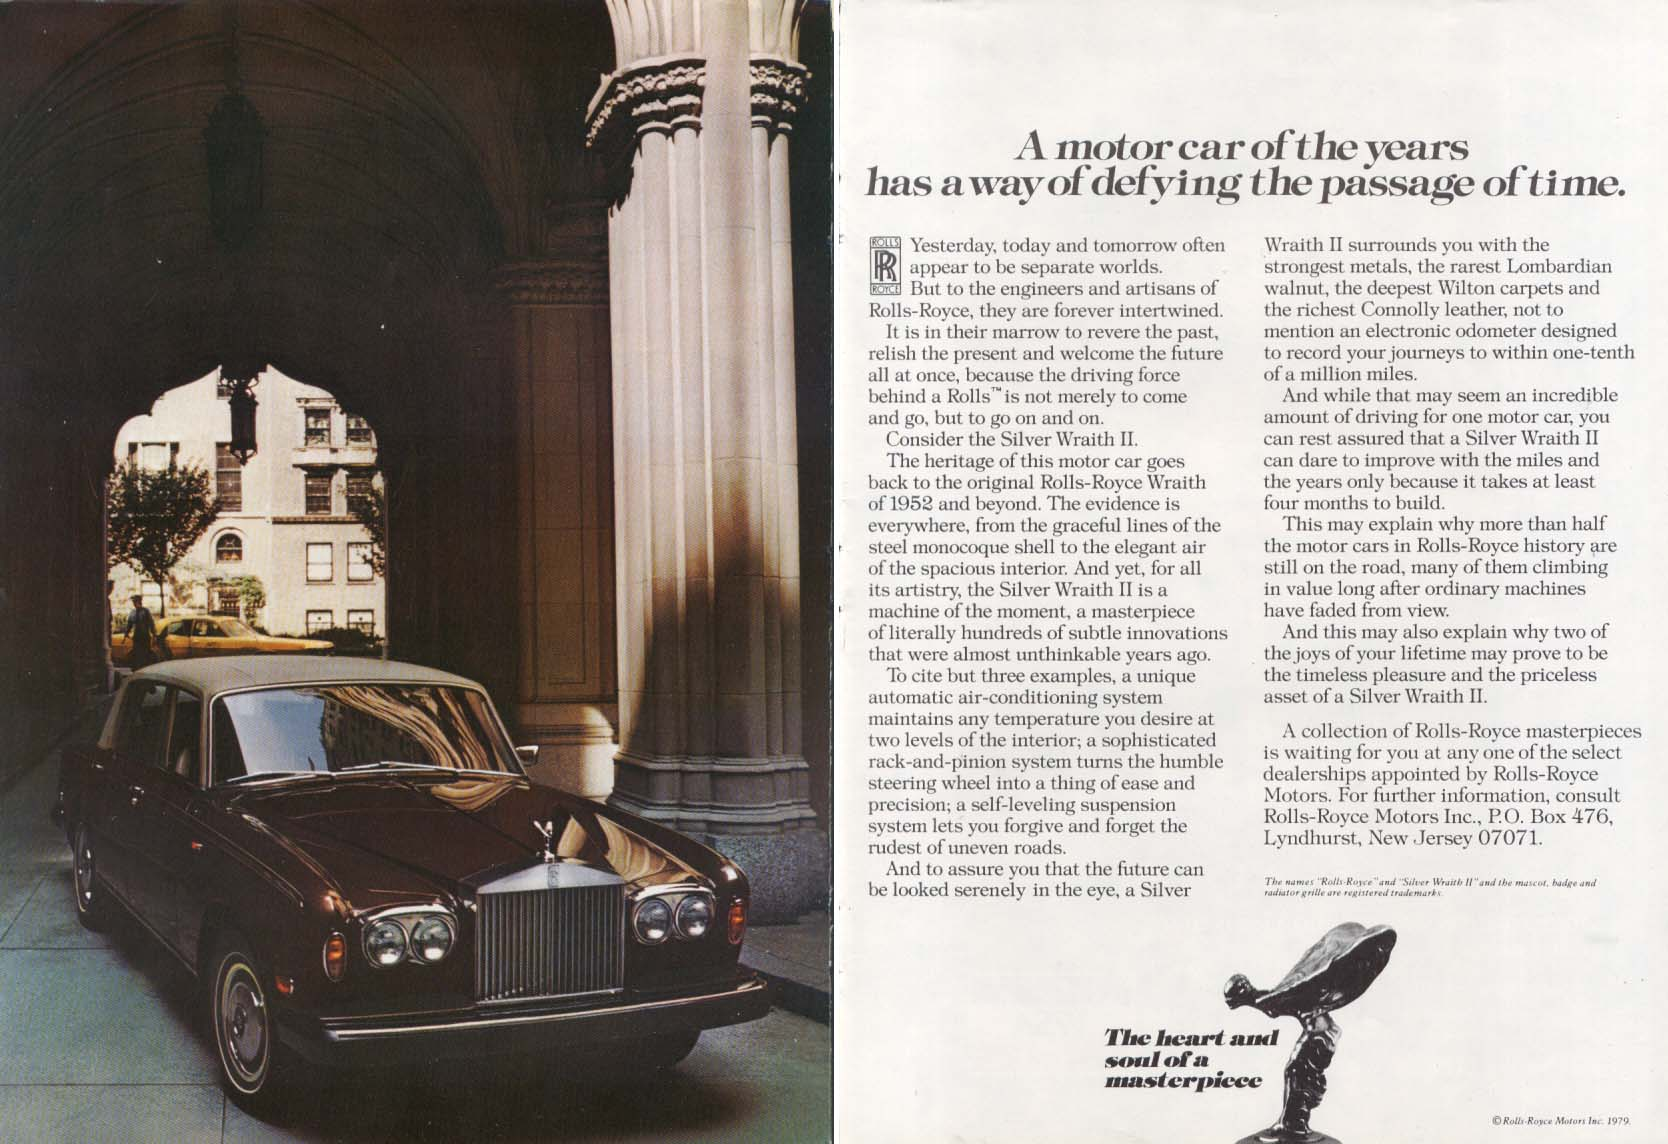 A motor car of the years Rolls-Royce ad 1979